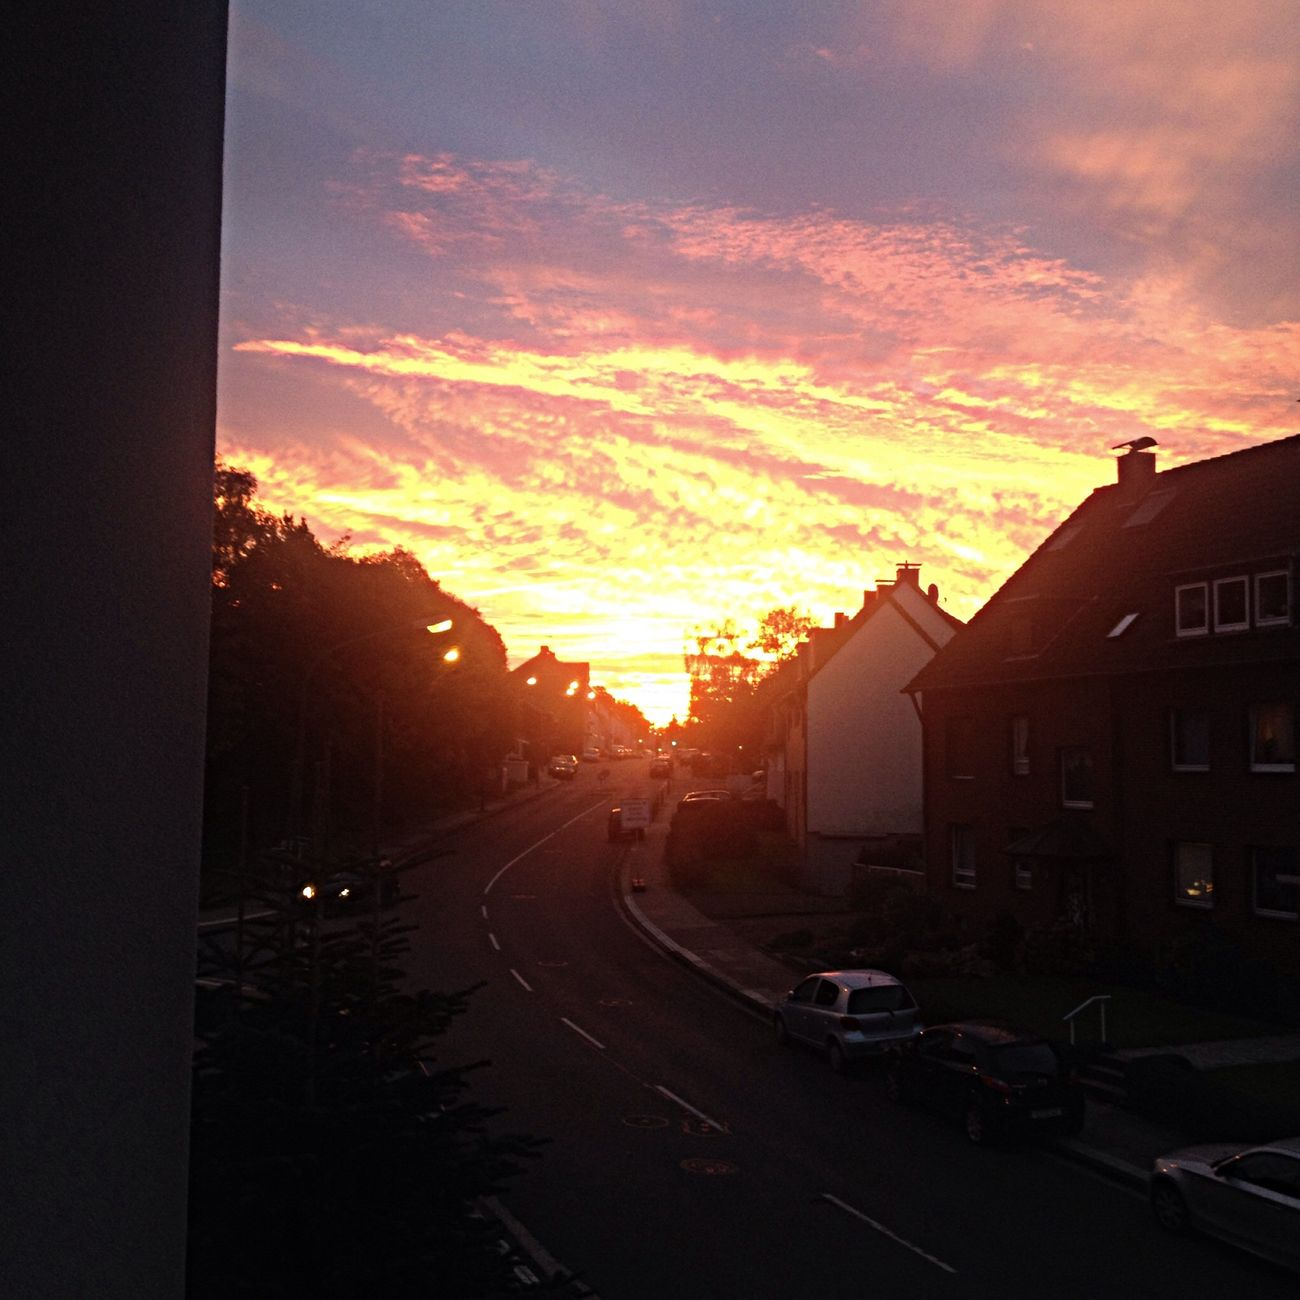 Der morgen hats insich - sonnenaufgang Sunset Sunrise Soaking Up The Sun Check This Out